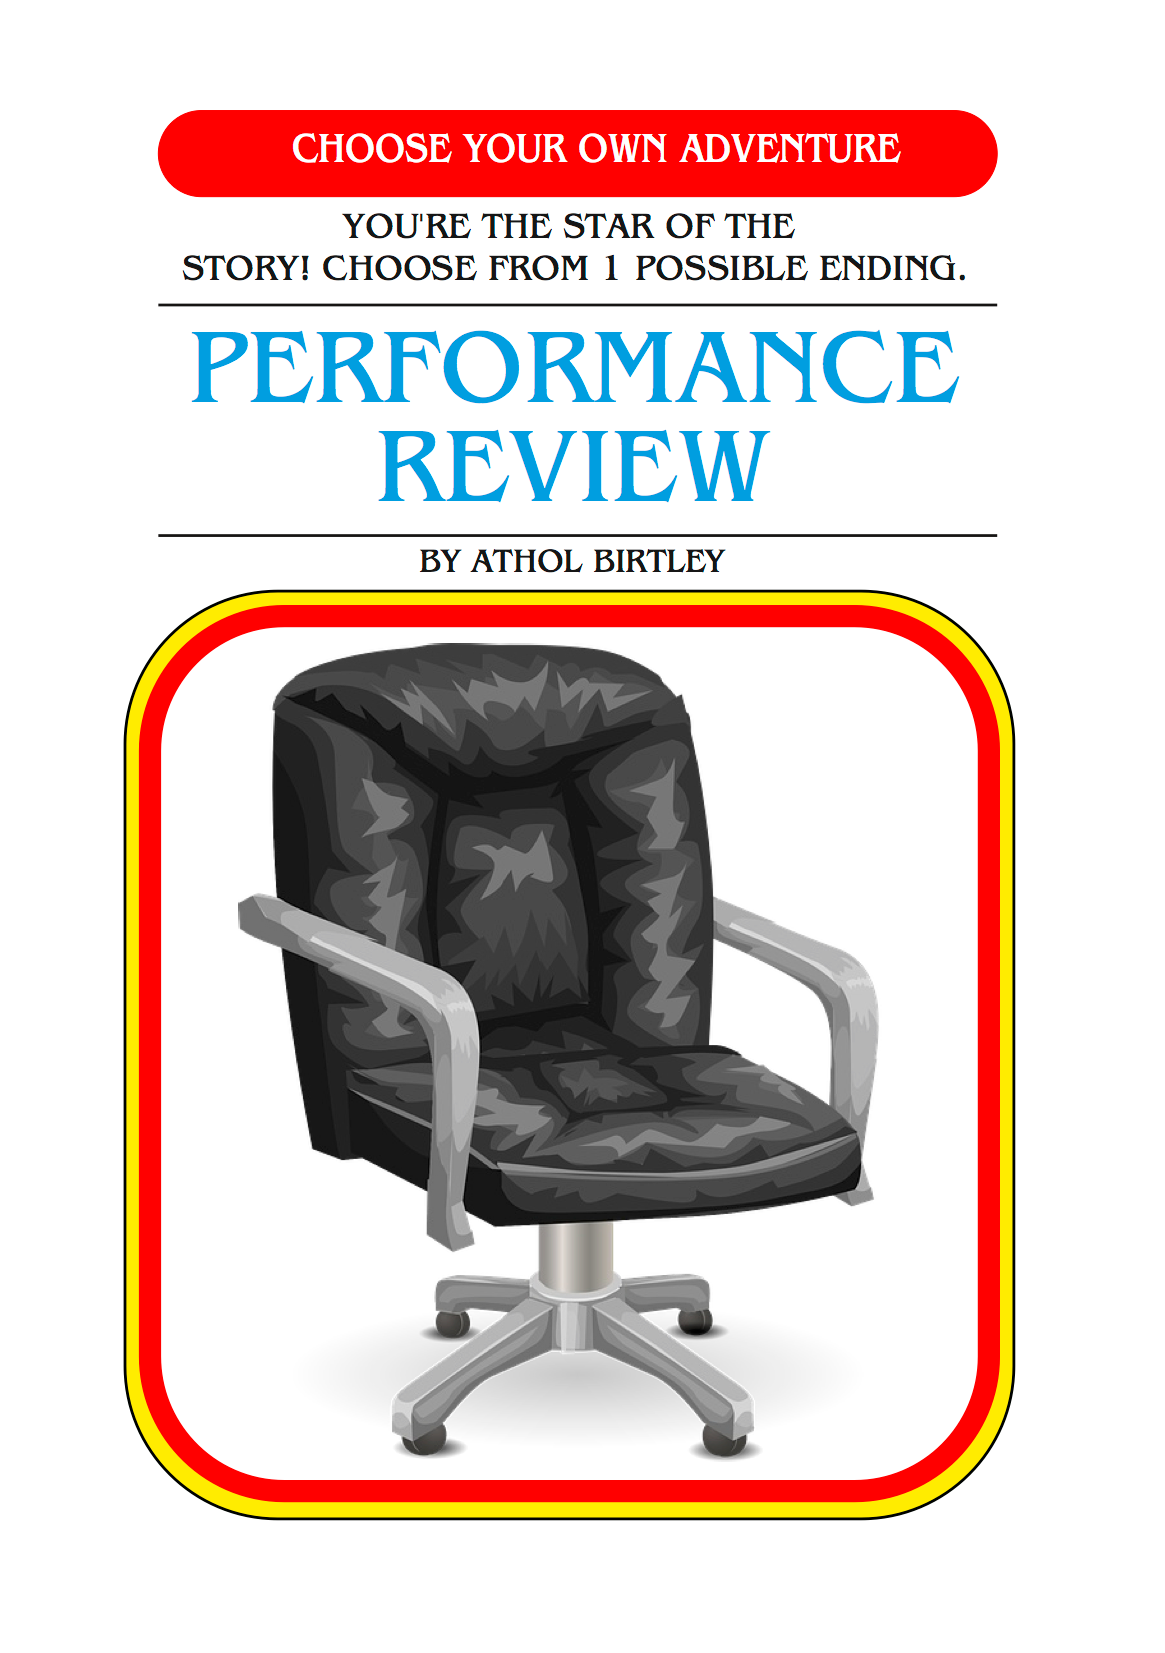 performance-review-1